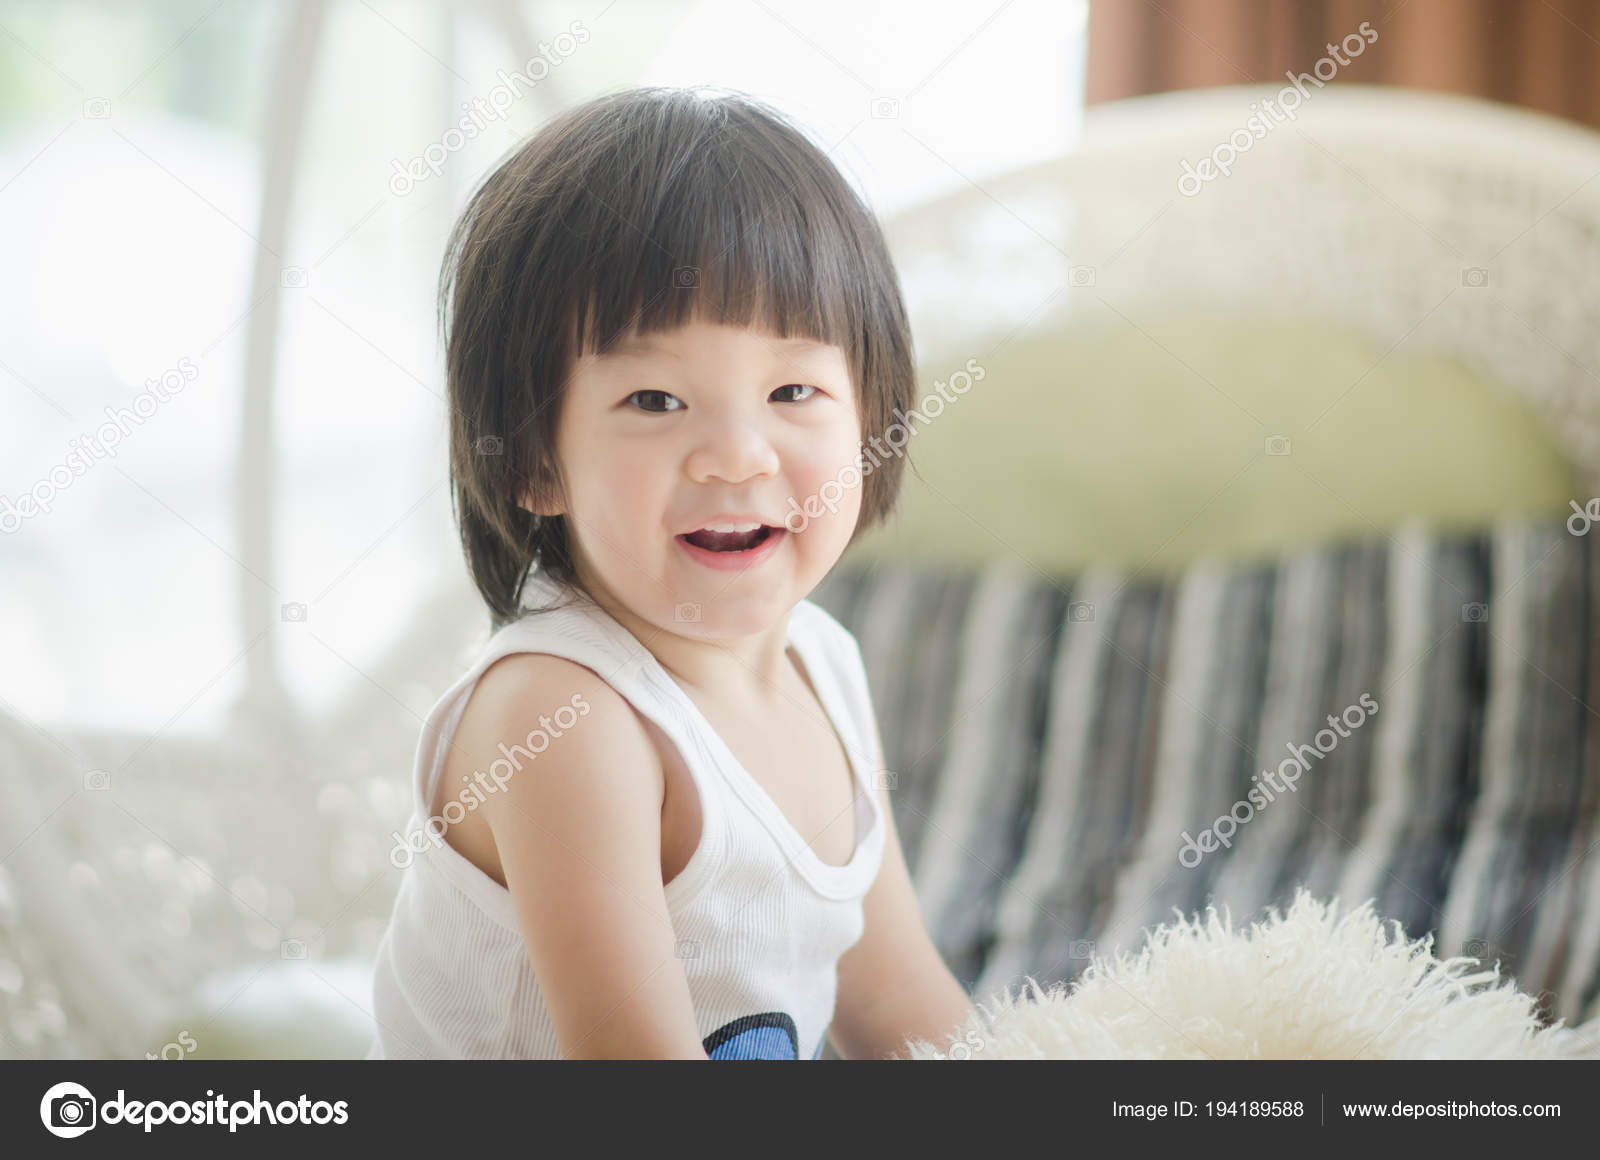 closeup photo cute asian baby expression — stock photo © lufimorgan